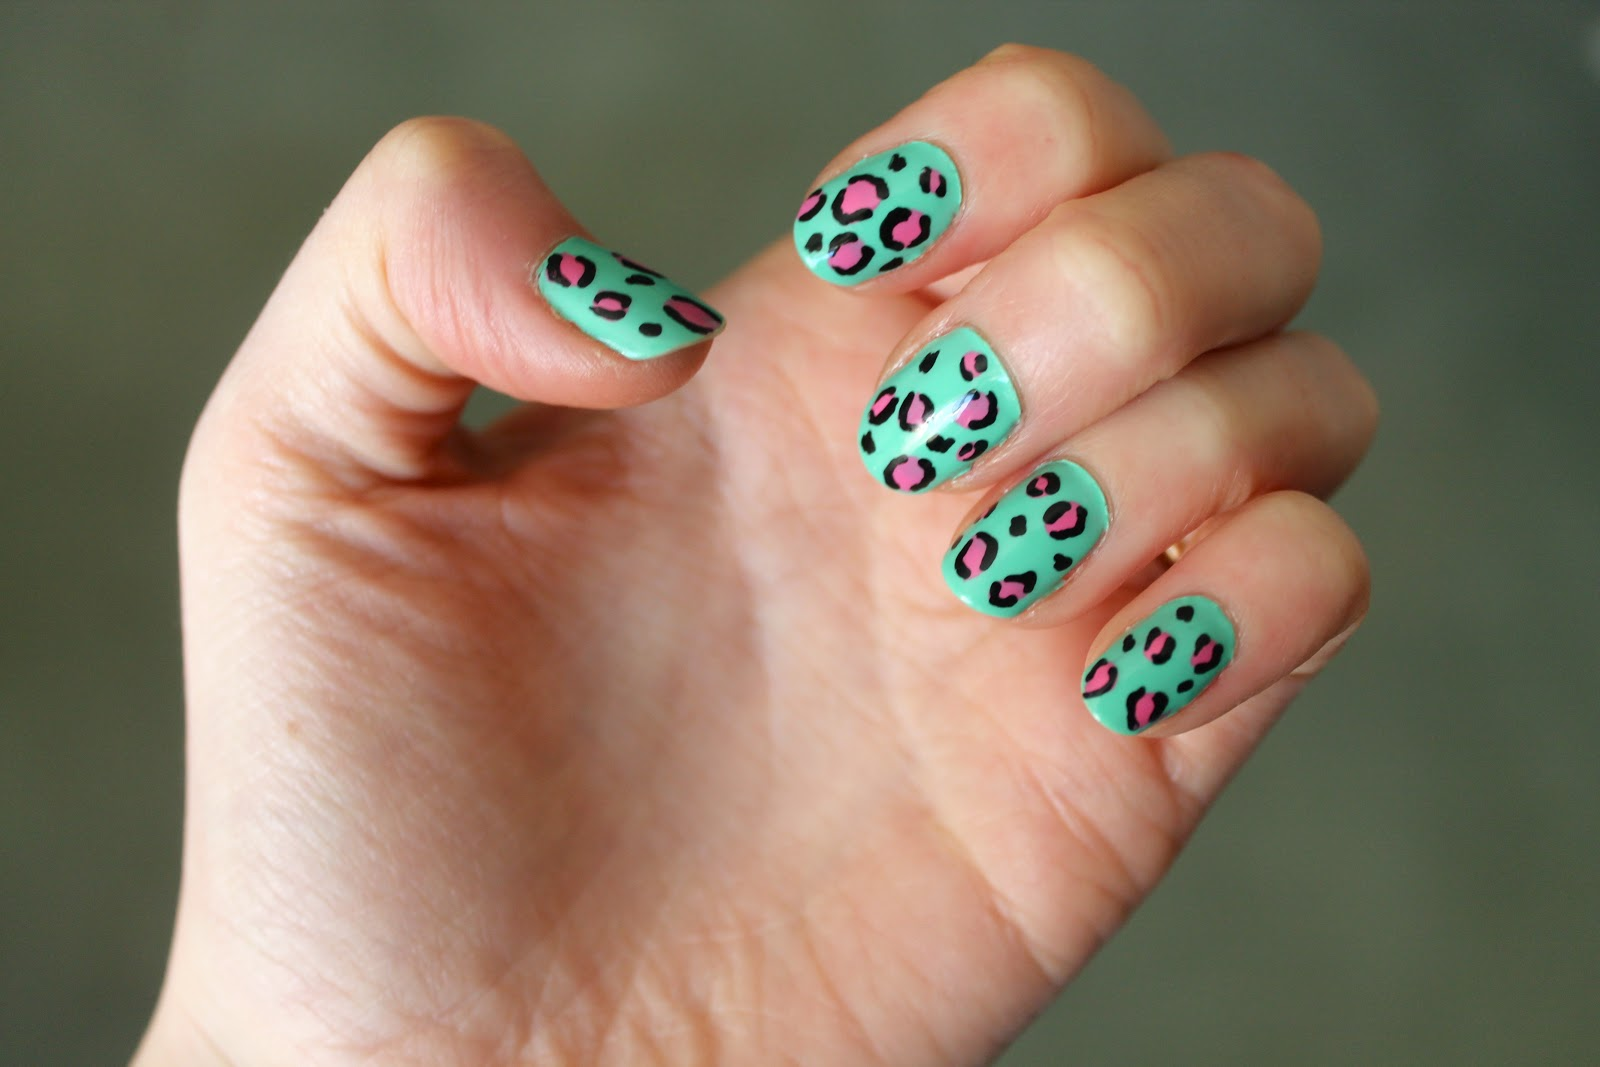 Cheetah Print with a Colourful Twist